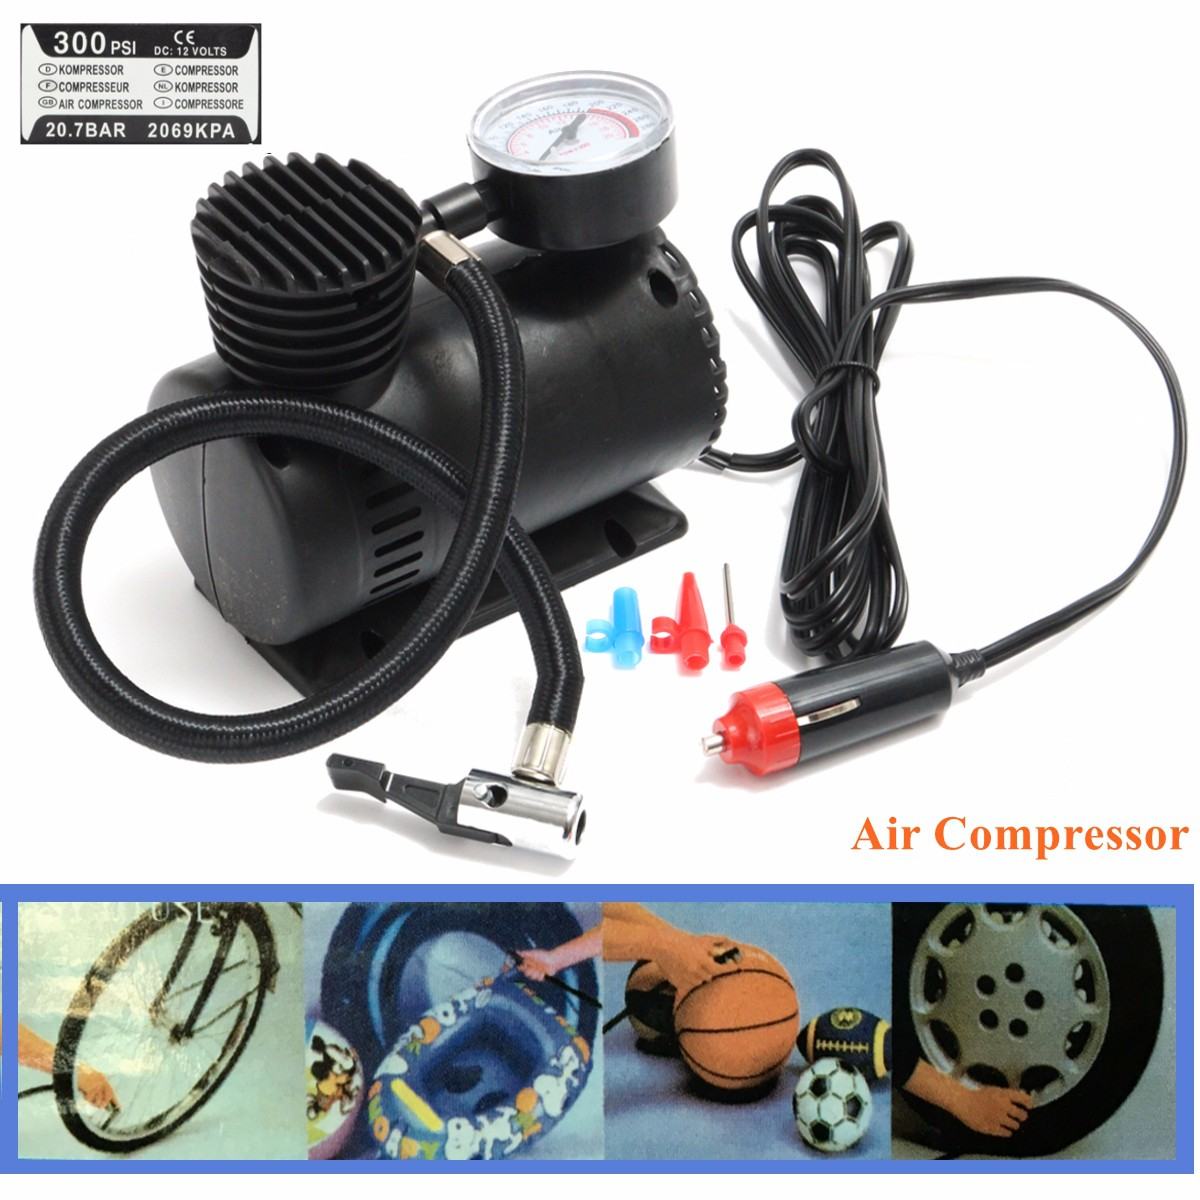 Image result for air compressor dc12v